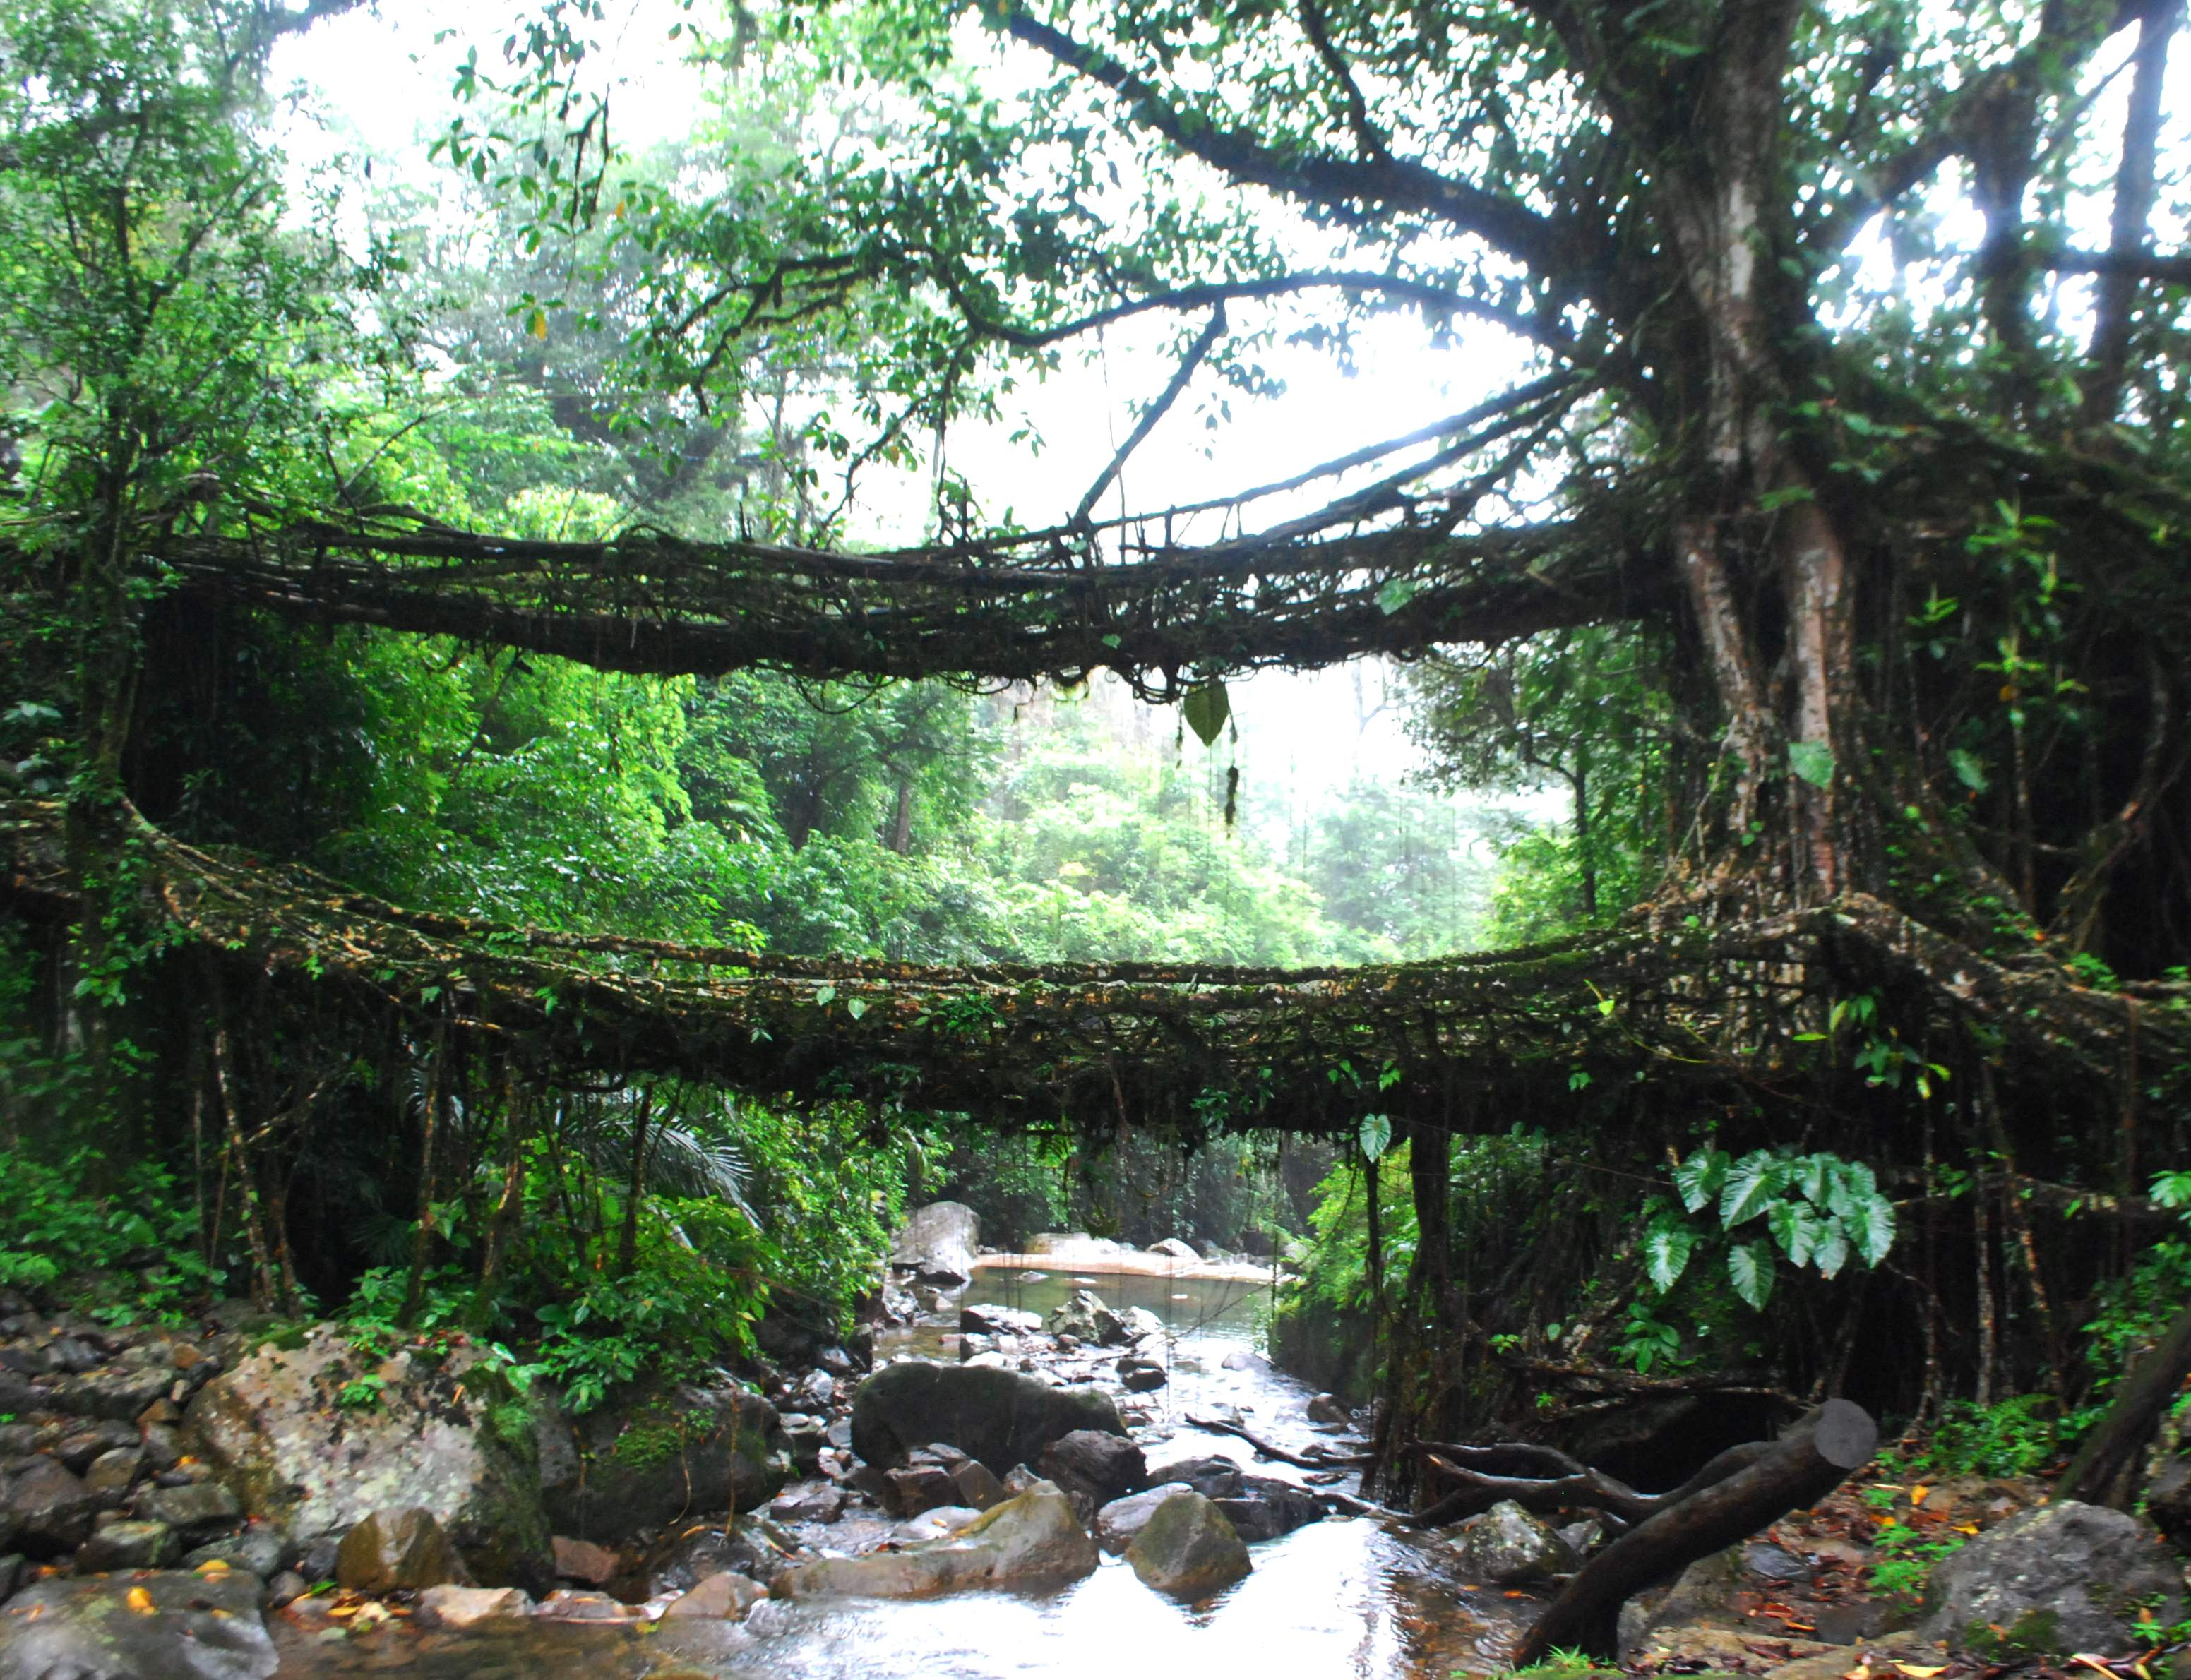 Backpacking North East India (Part 4 of 5) – Meghalaya